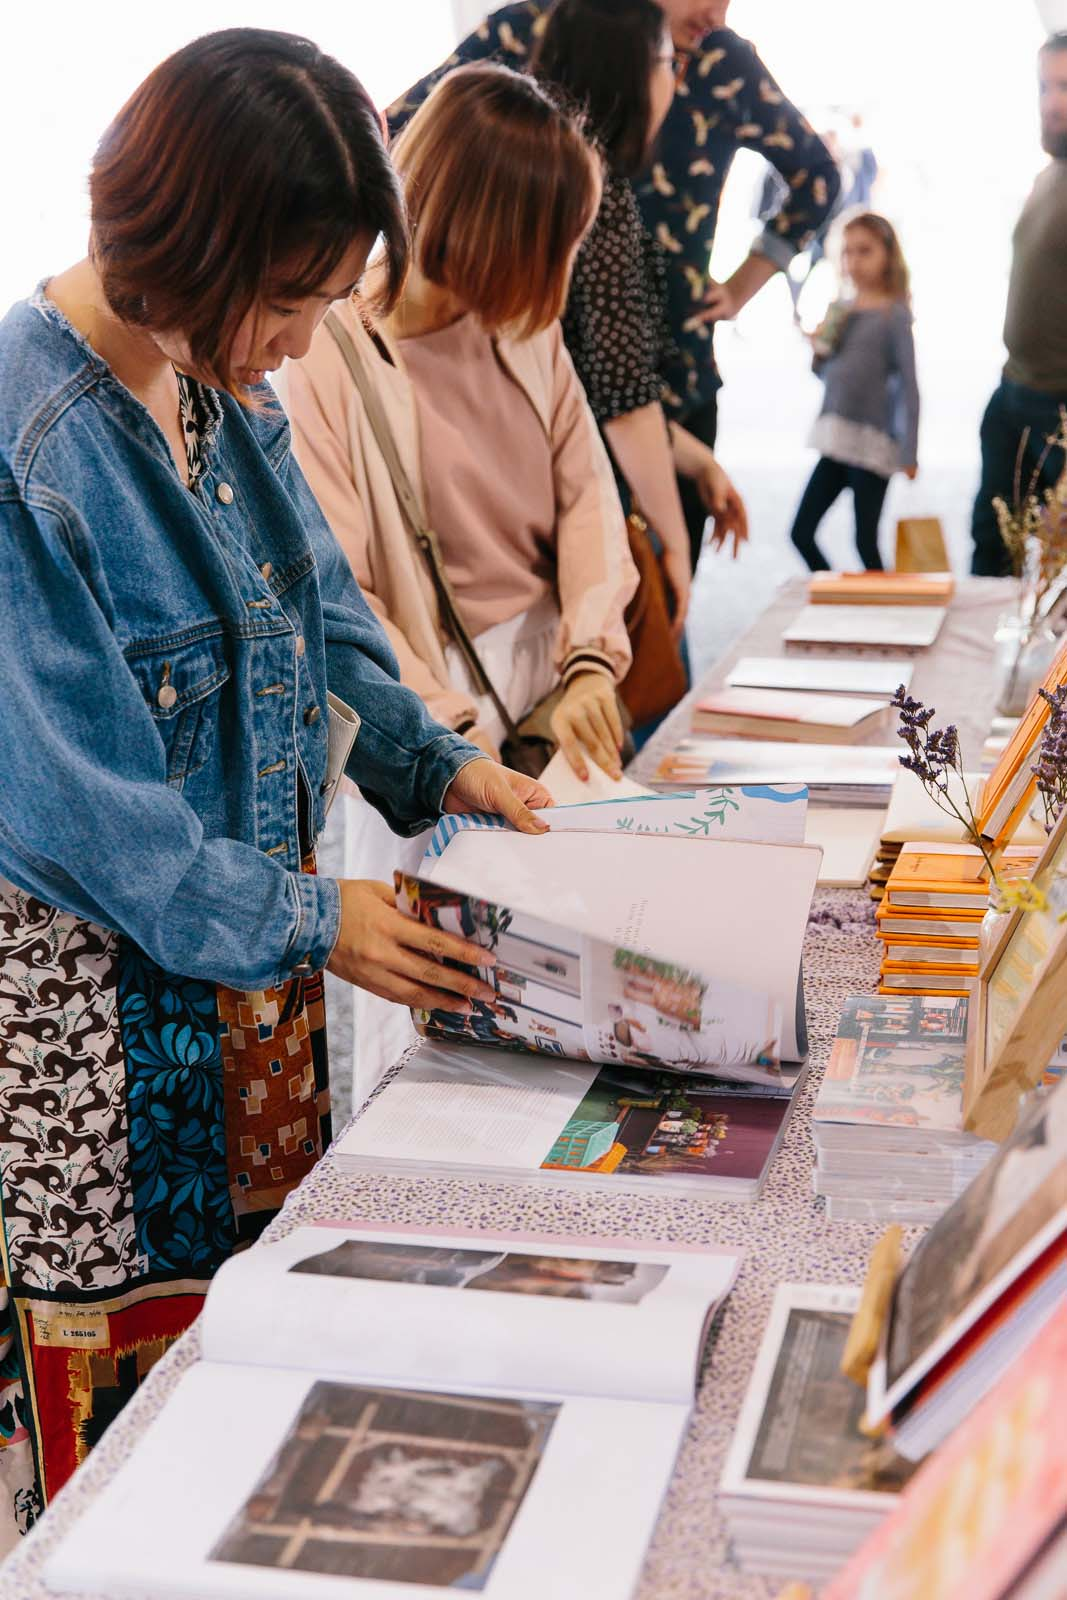 Market goers looking at books at the Frankie Magazine stall